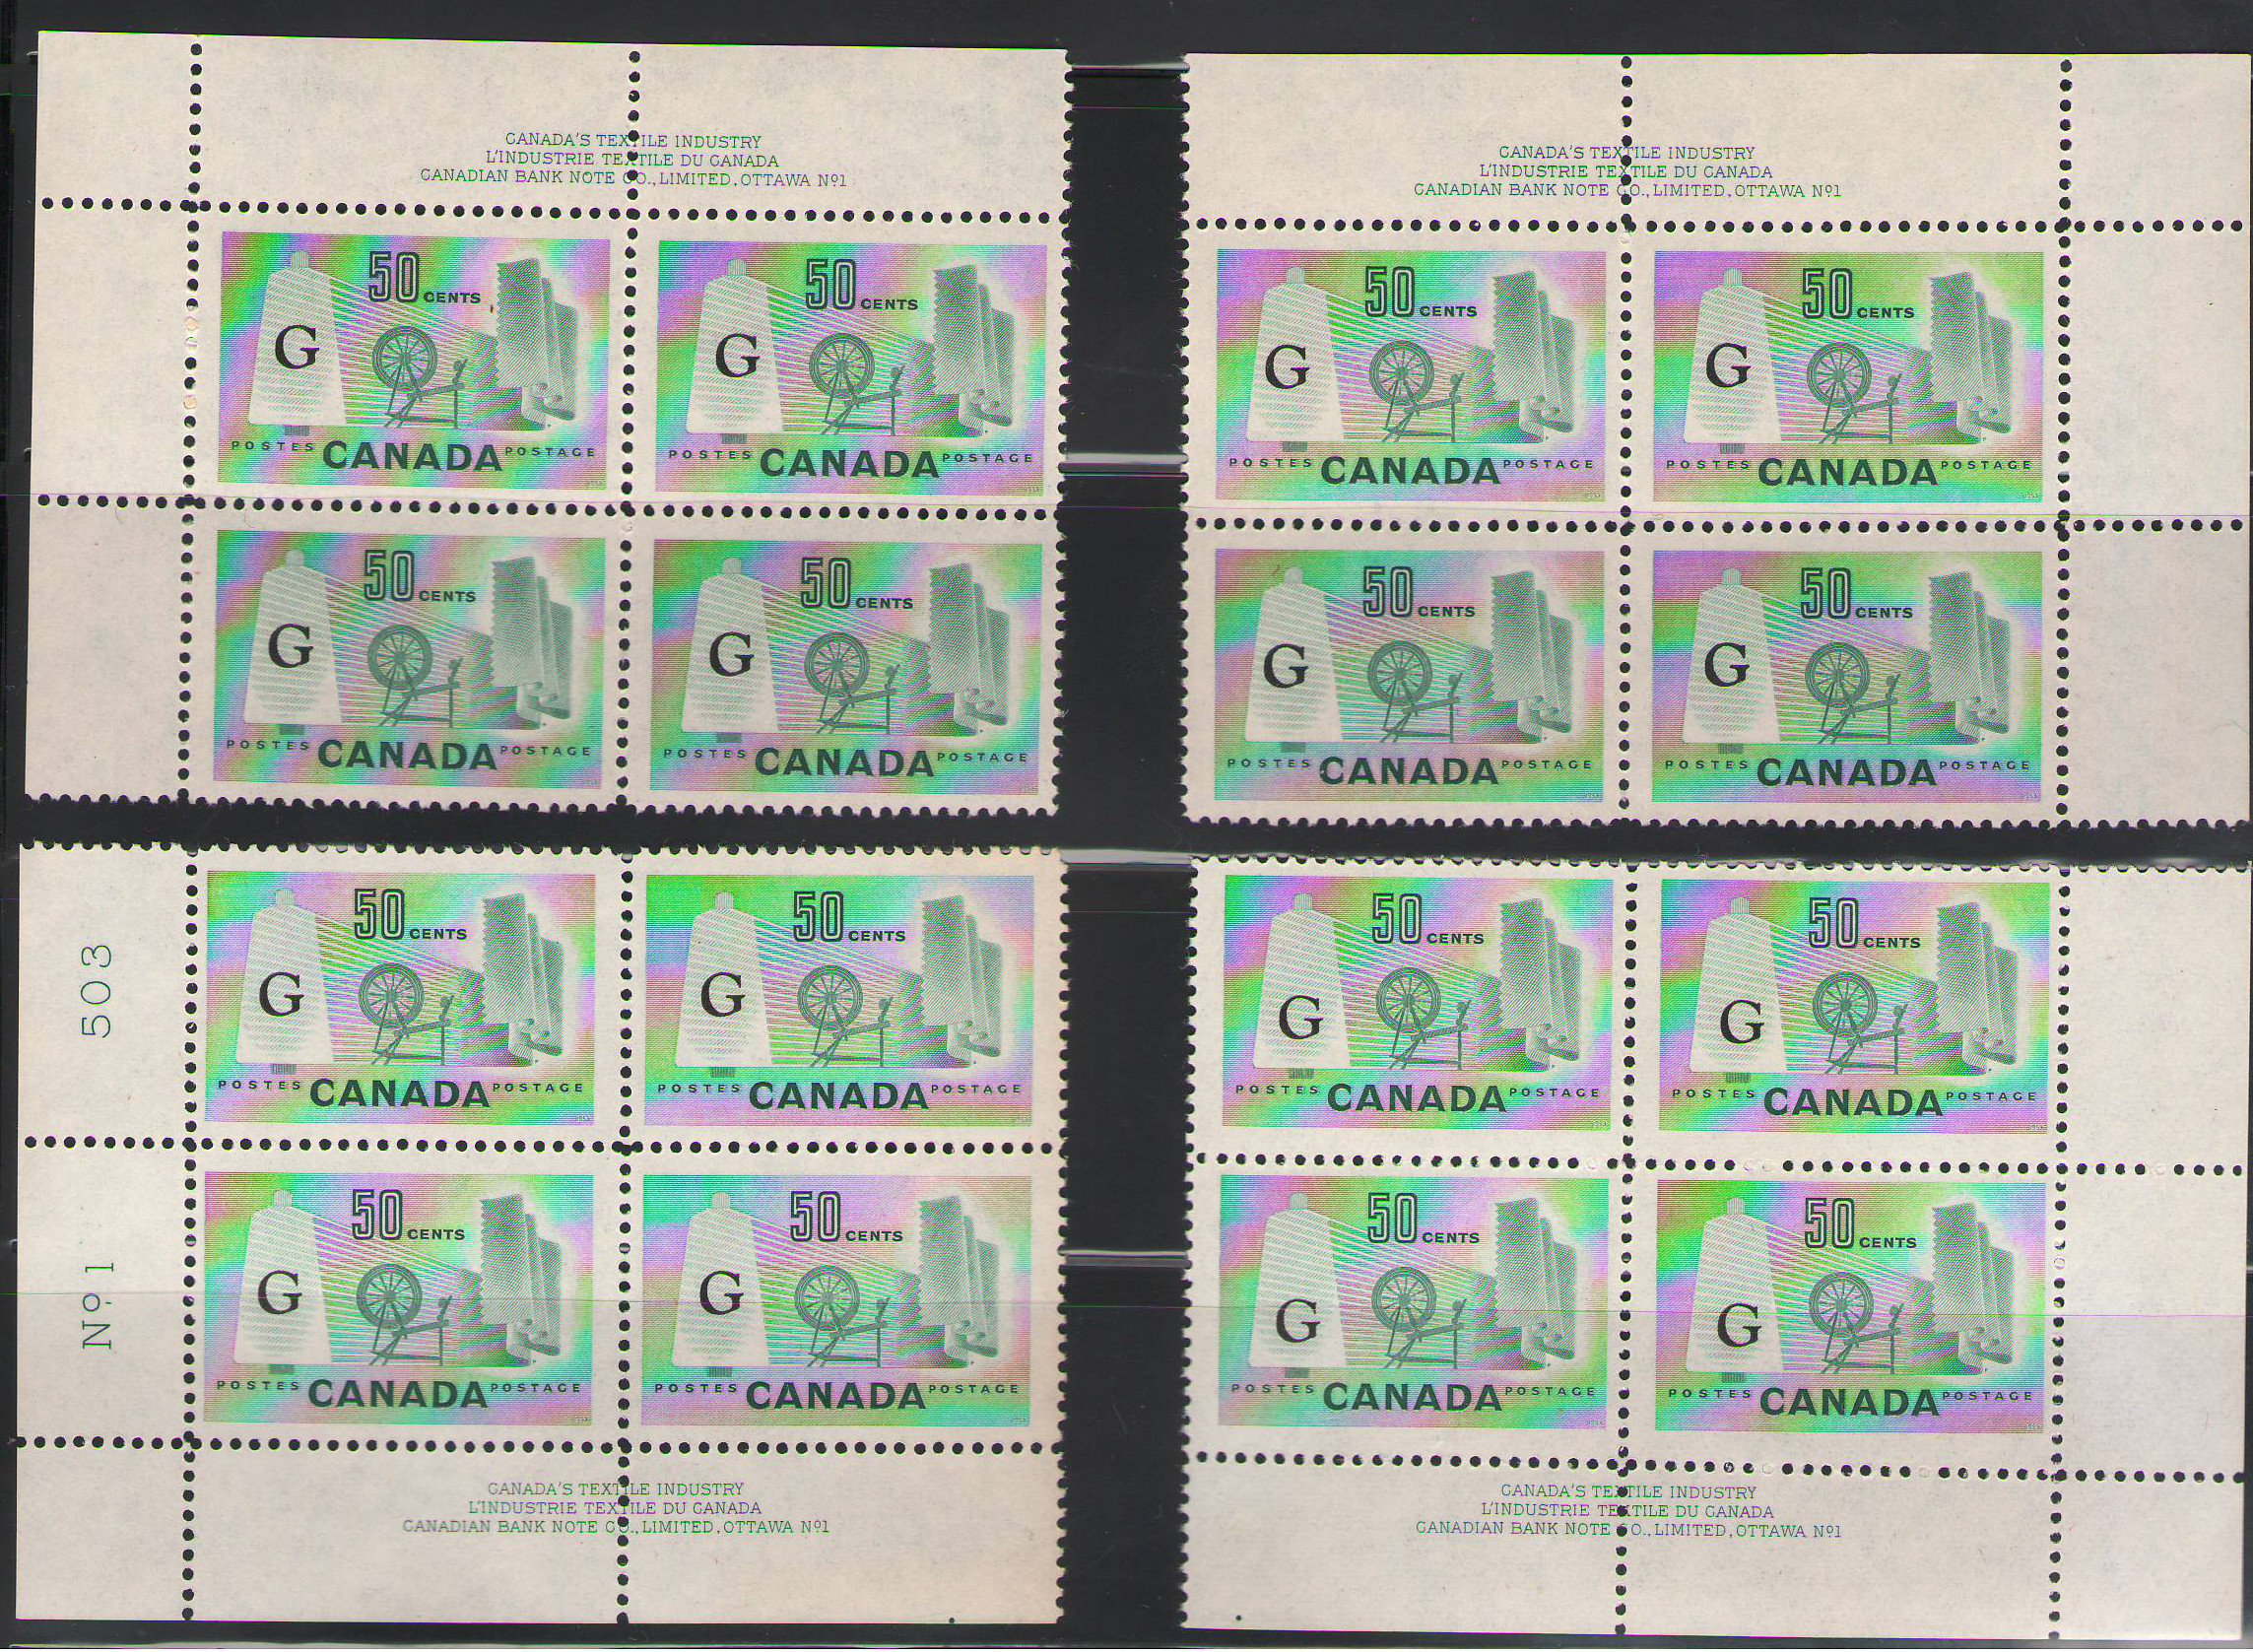 Canada 1961-1962 50c Textile Officials overprinted G - MNH matched set of Plate blocks - Unitrade CV CD$280.